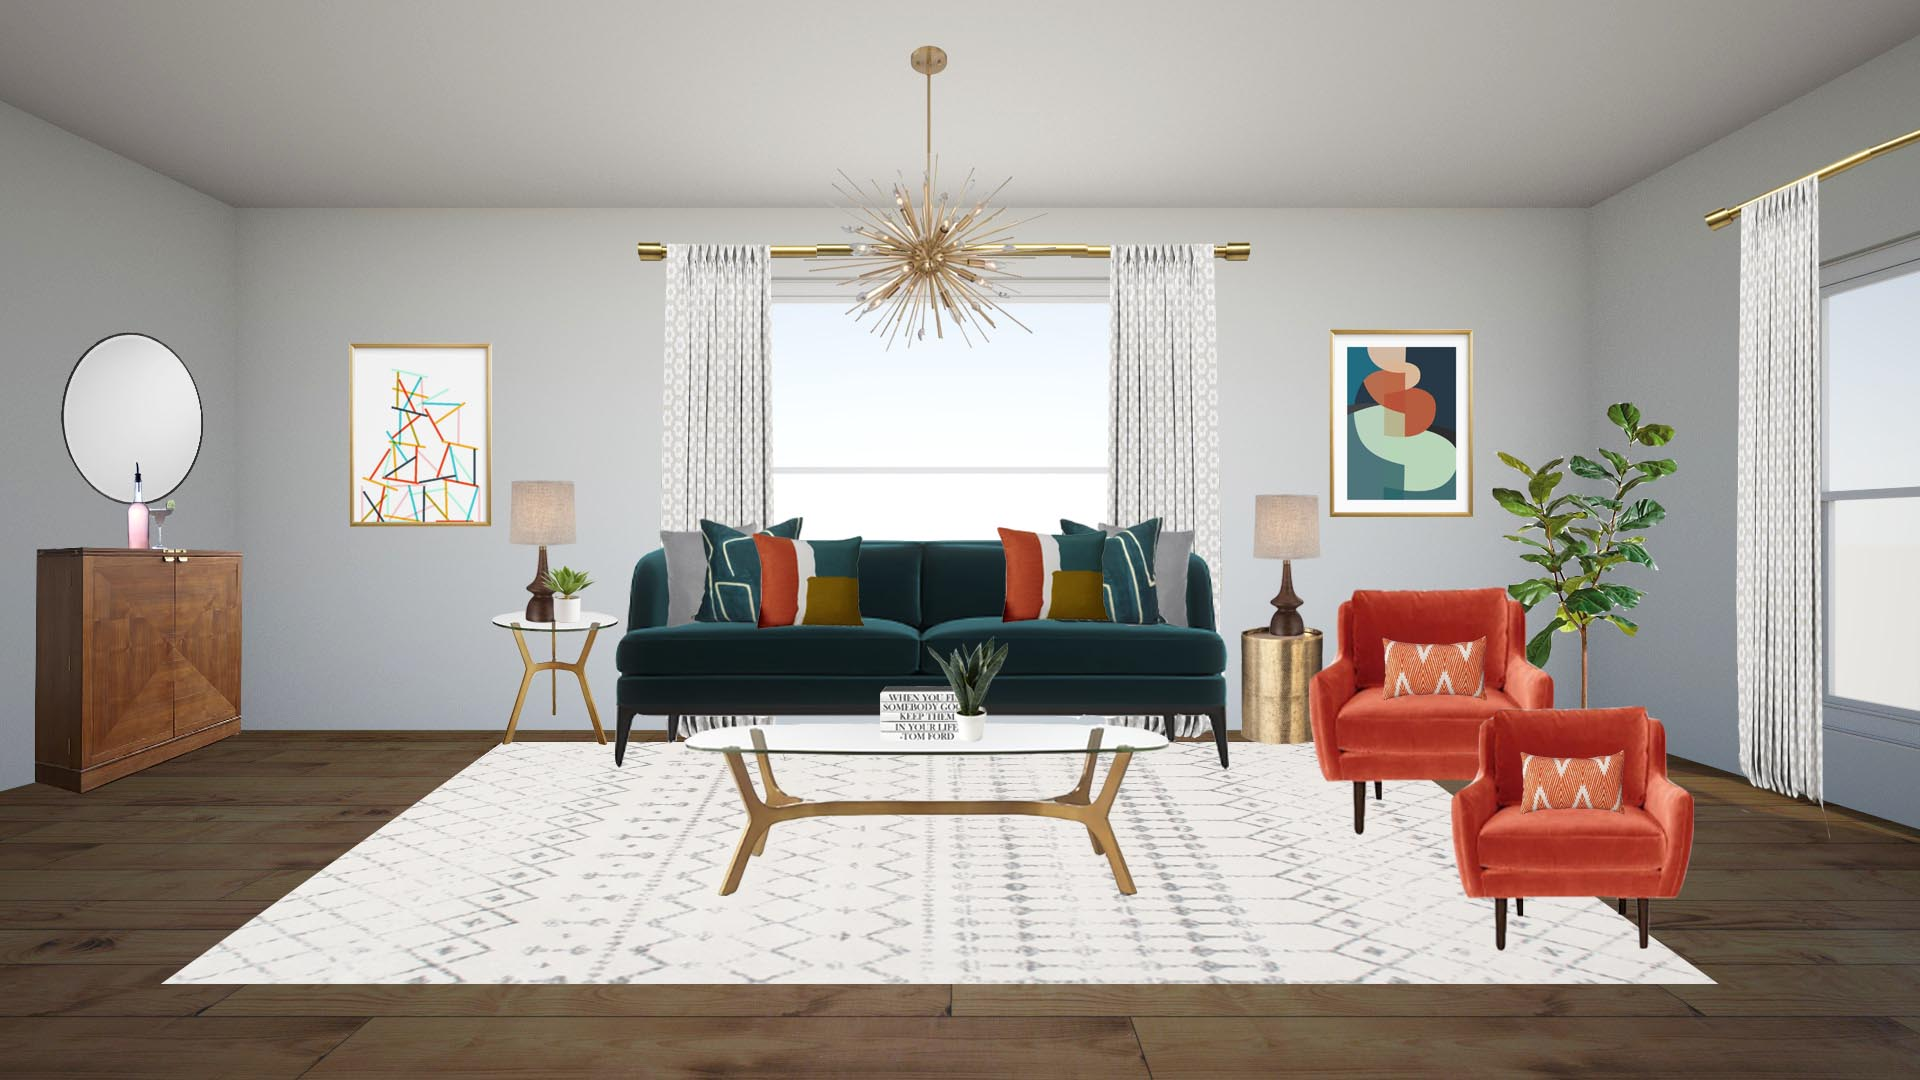 Purcell Living Room - This is a design that was created for a home in Chicago, IL. Actual photos will be added here soon.VIEW ALL PHOTOS